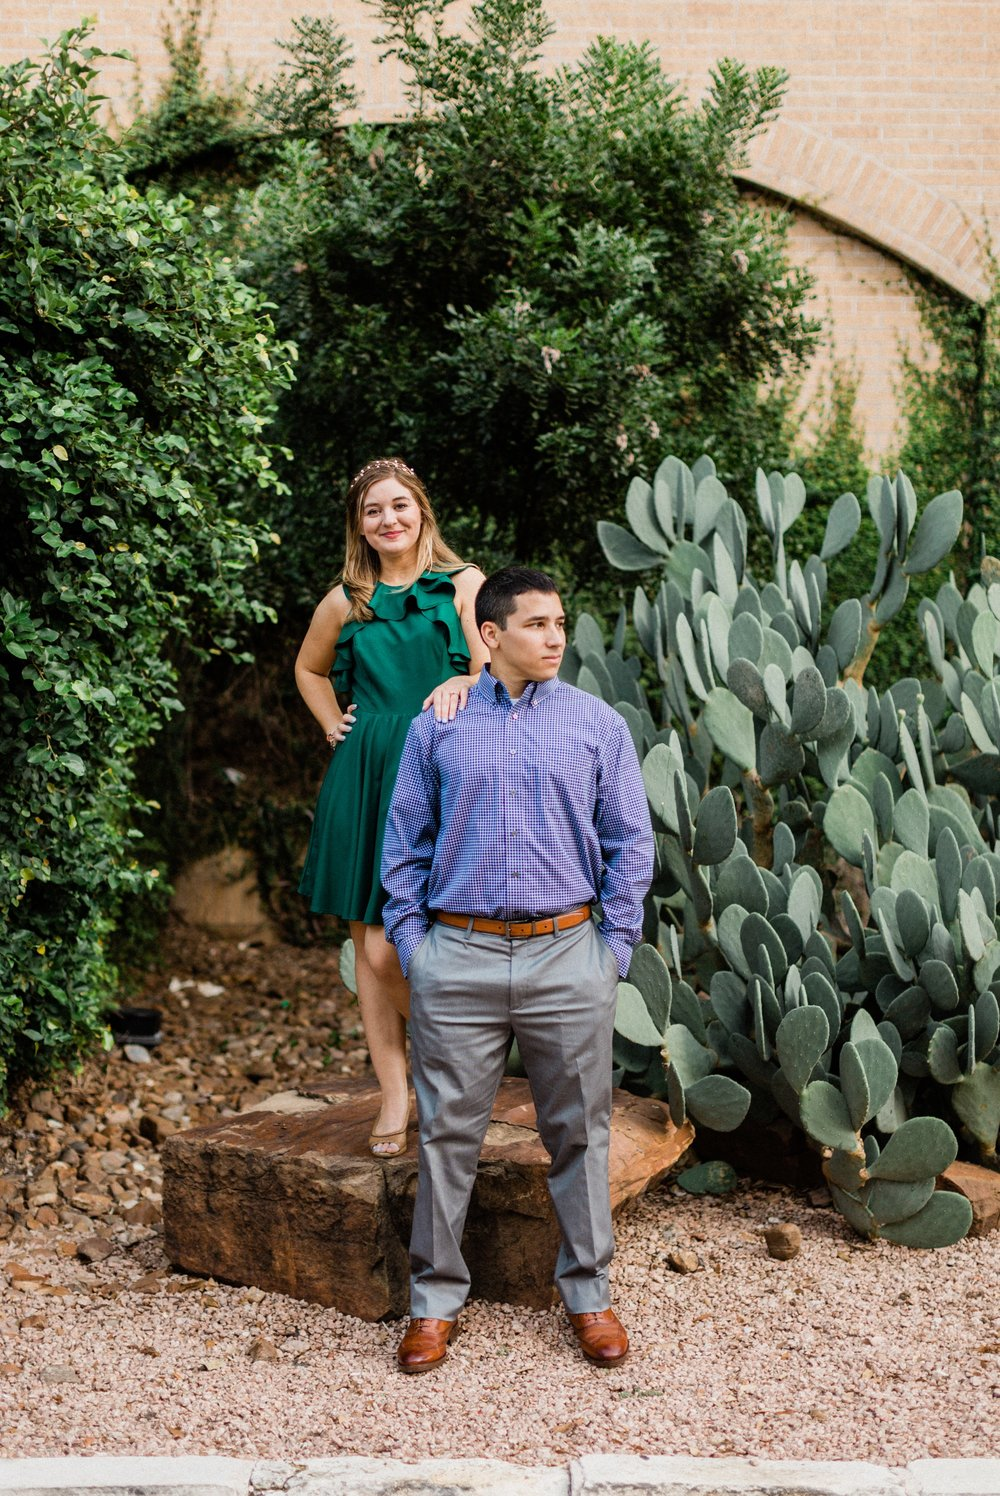 fall downtown austin texas engagement photo, dreamy elk photography and design